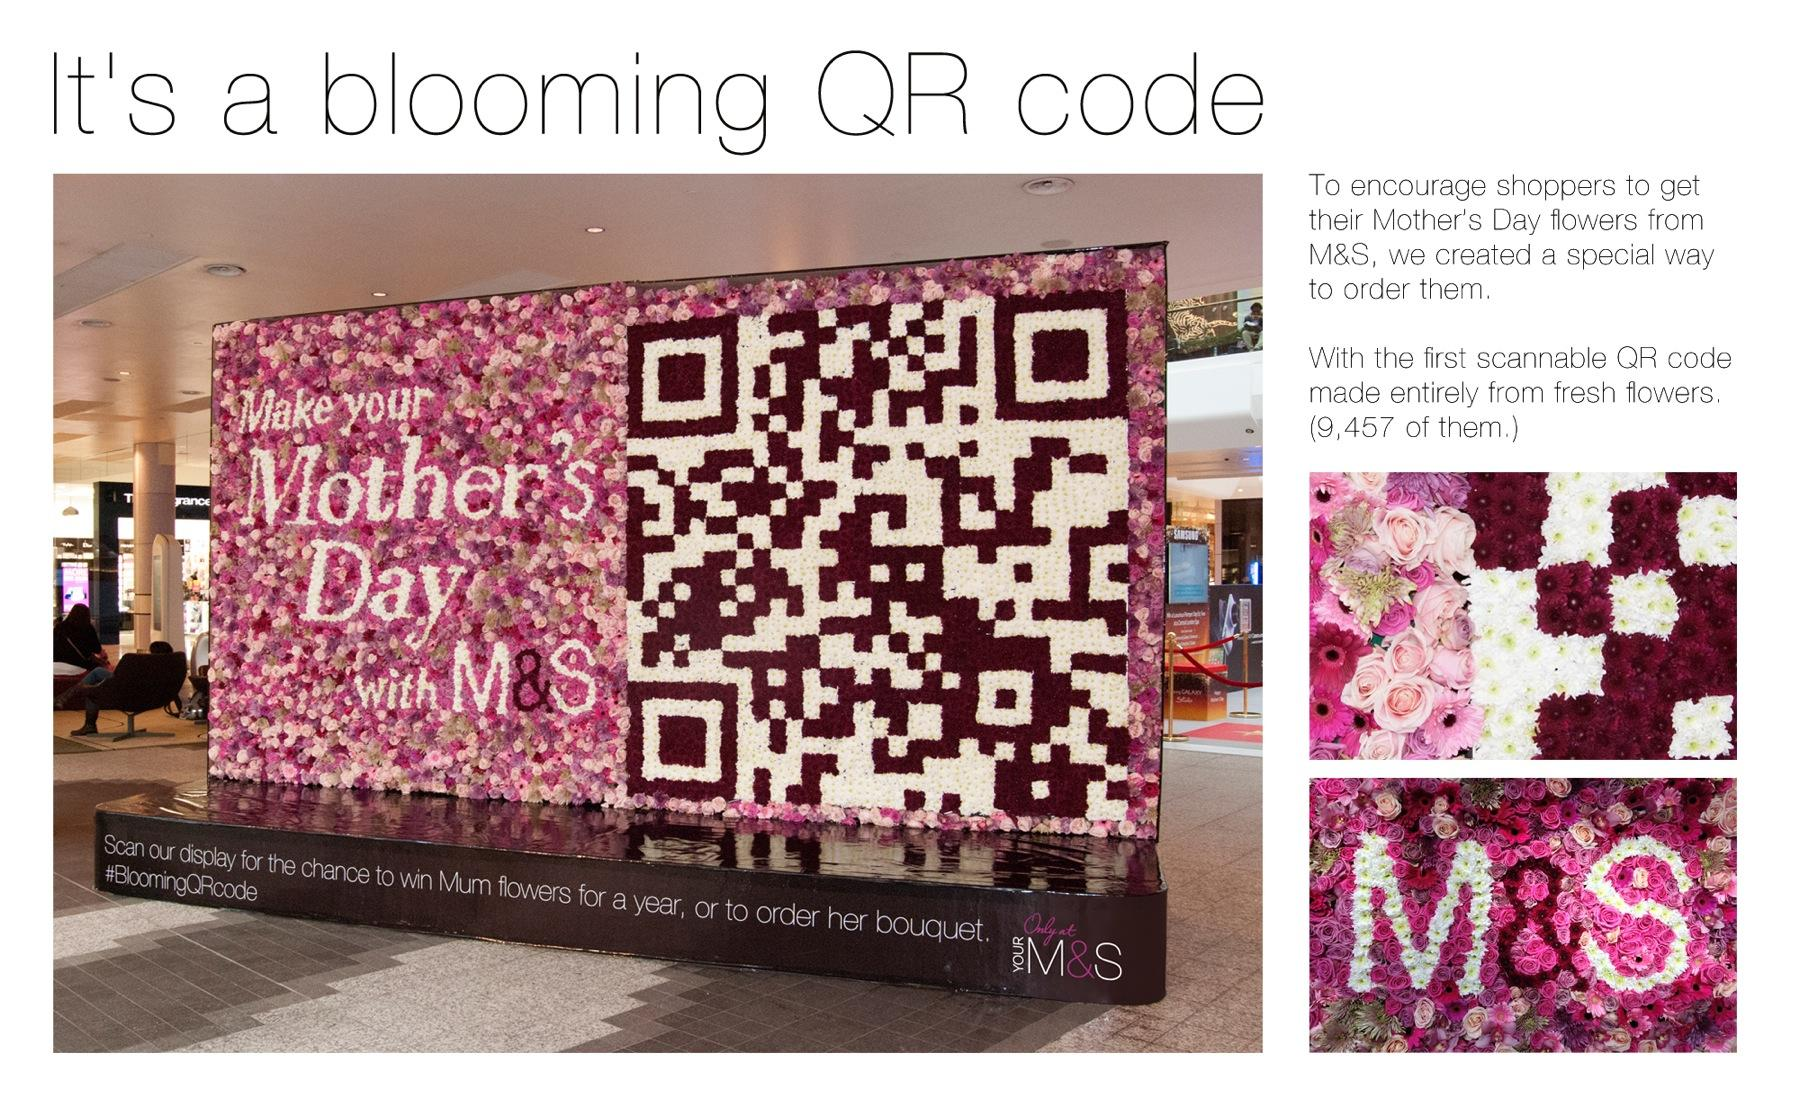 M&S Ambient Ad -  Blooming QR Code